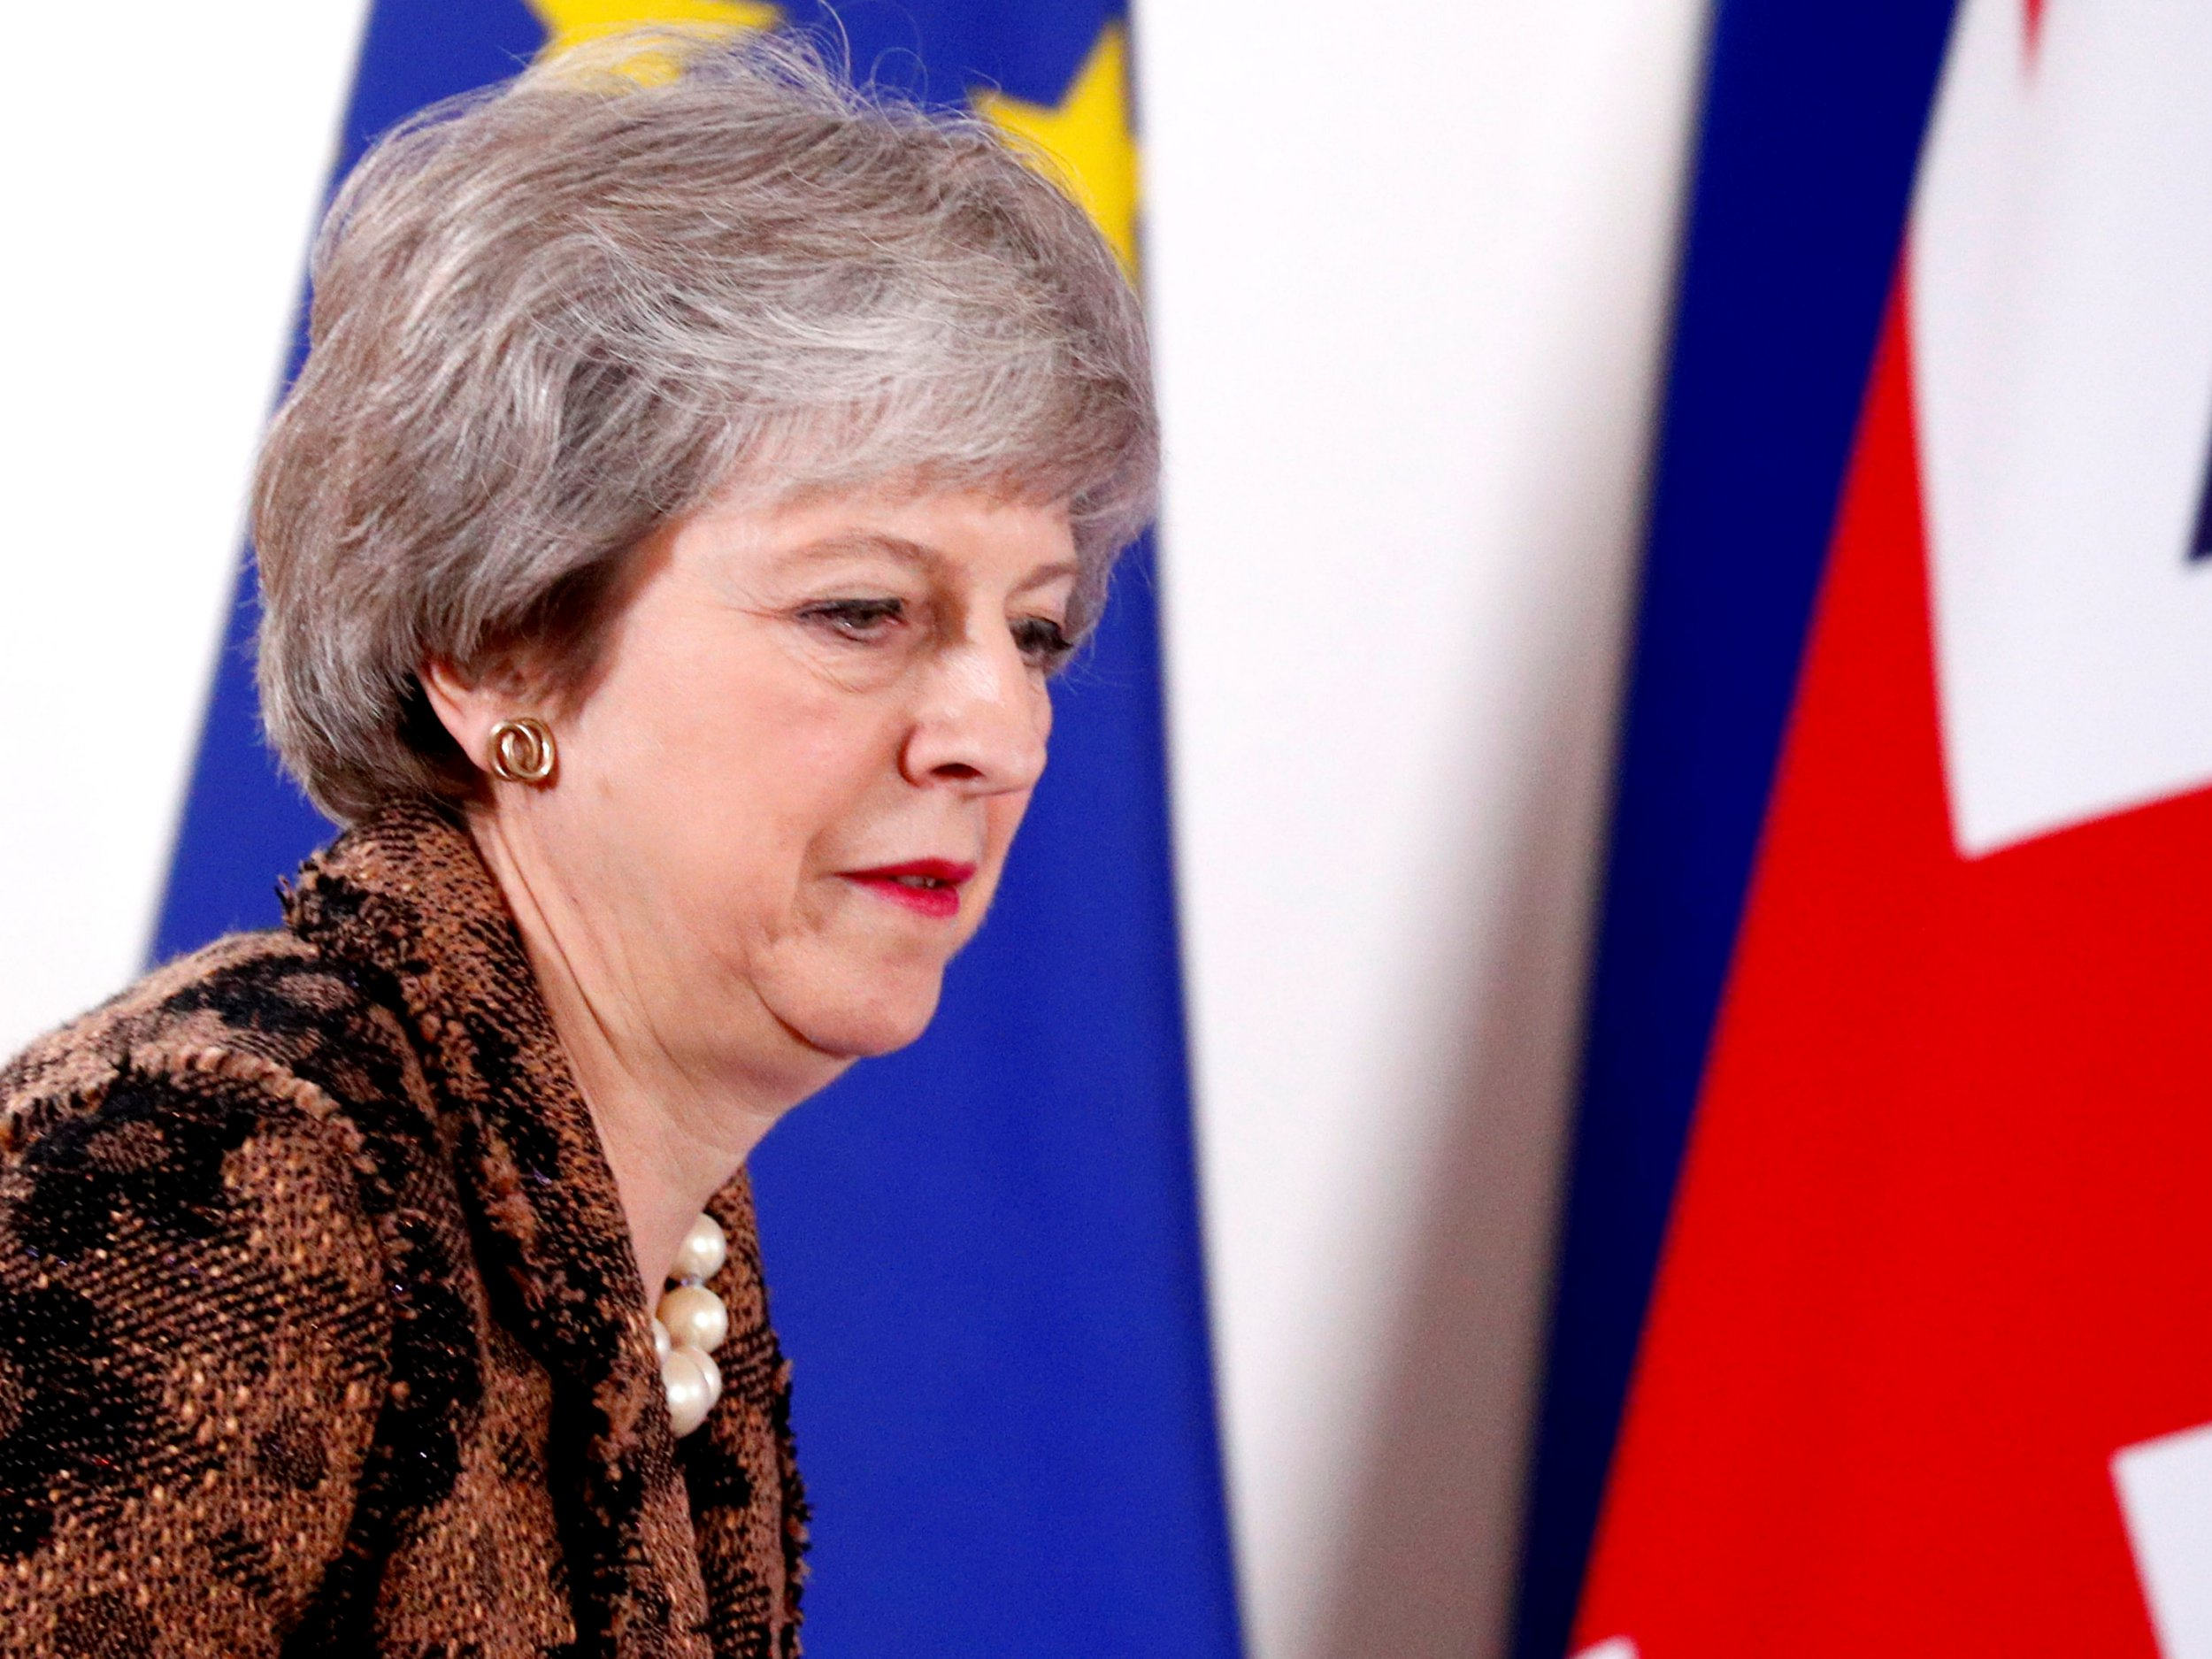 British Prime Minister Theresa May arrives to attend a news conference after a European Union leaders summit in Brussels, Belgium December 14, 2018. REUTERS/Francois Lenoir